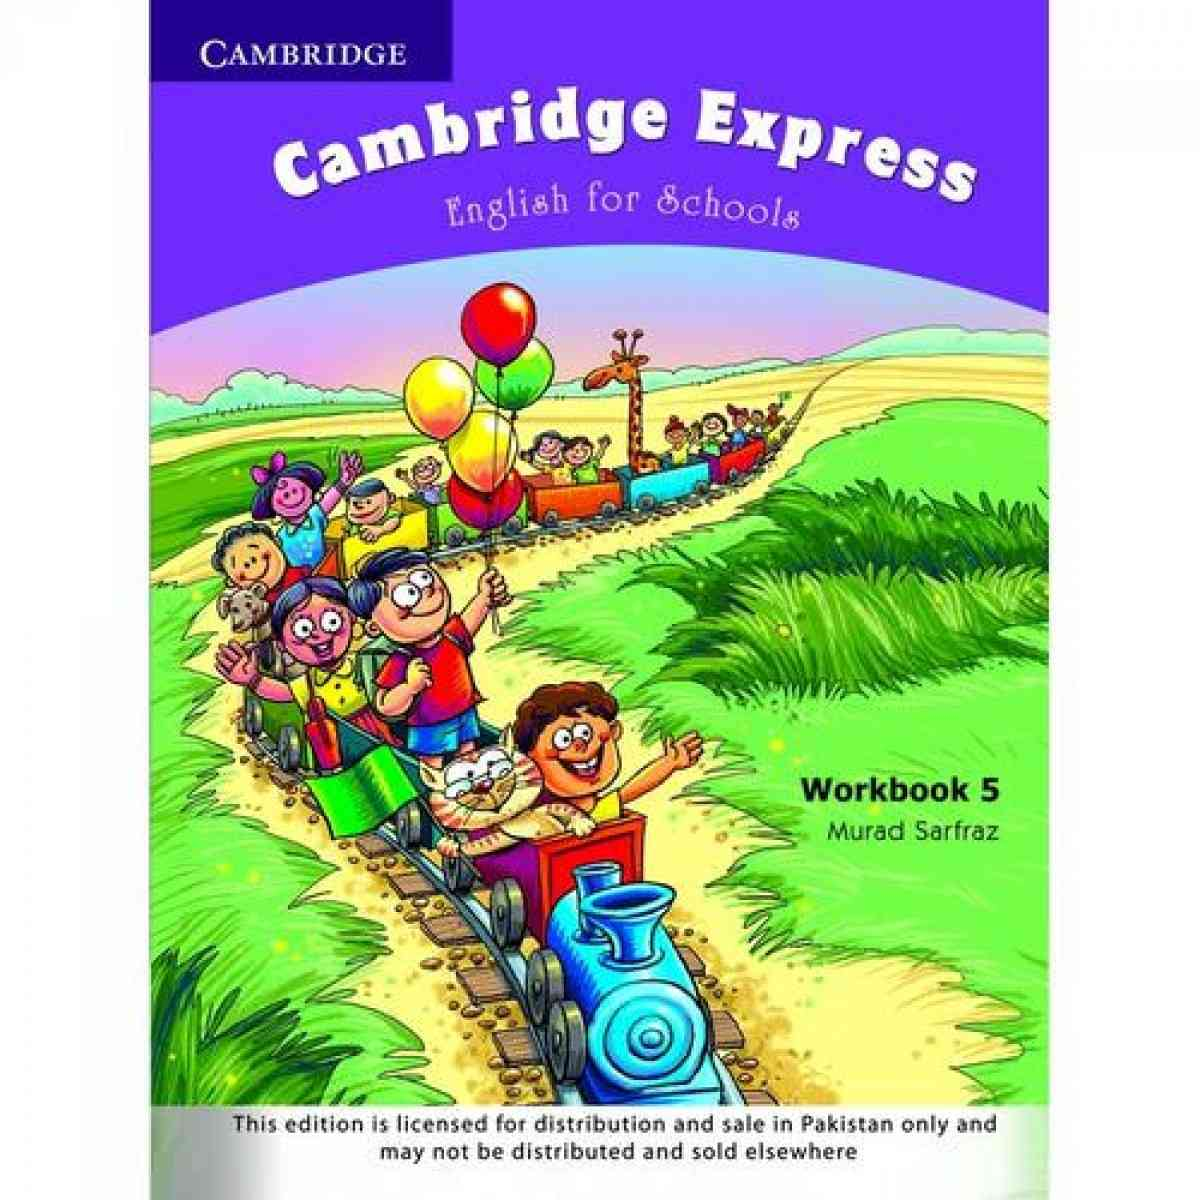 Cambridge Express: English For Schools Workbook 5